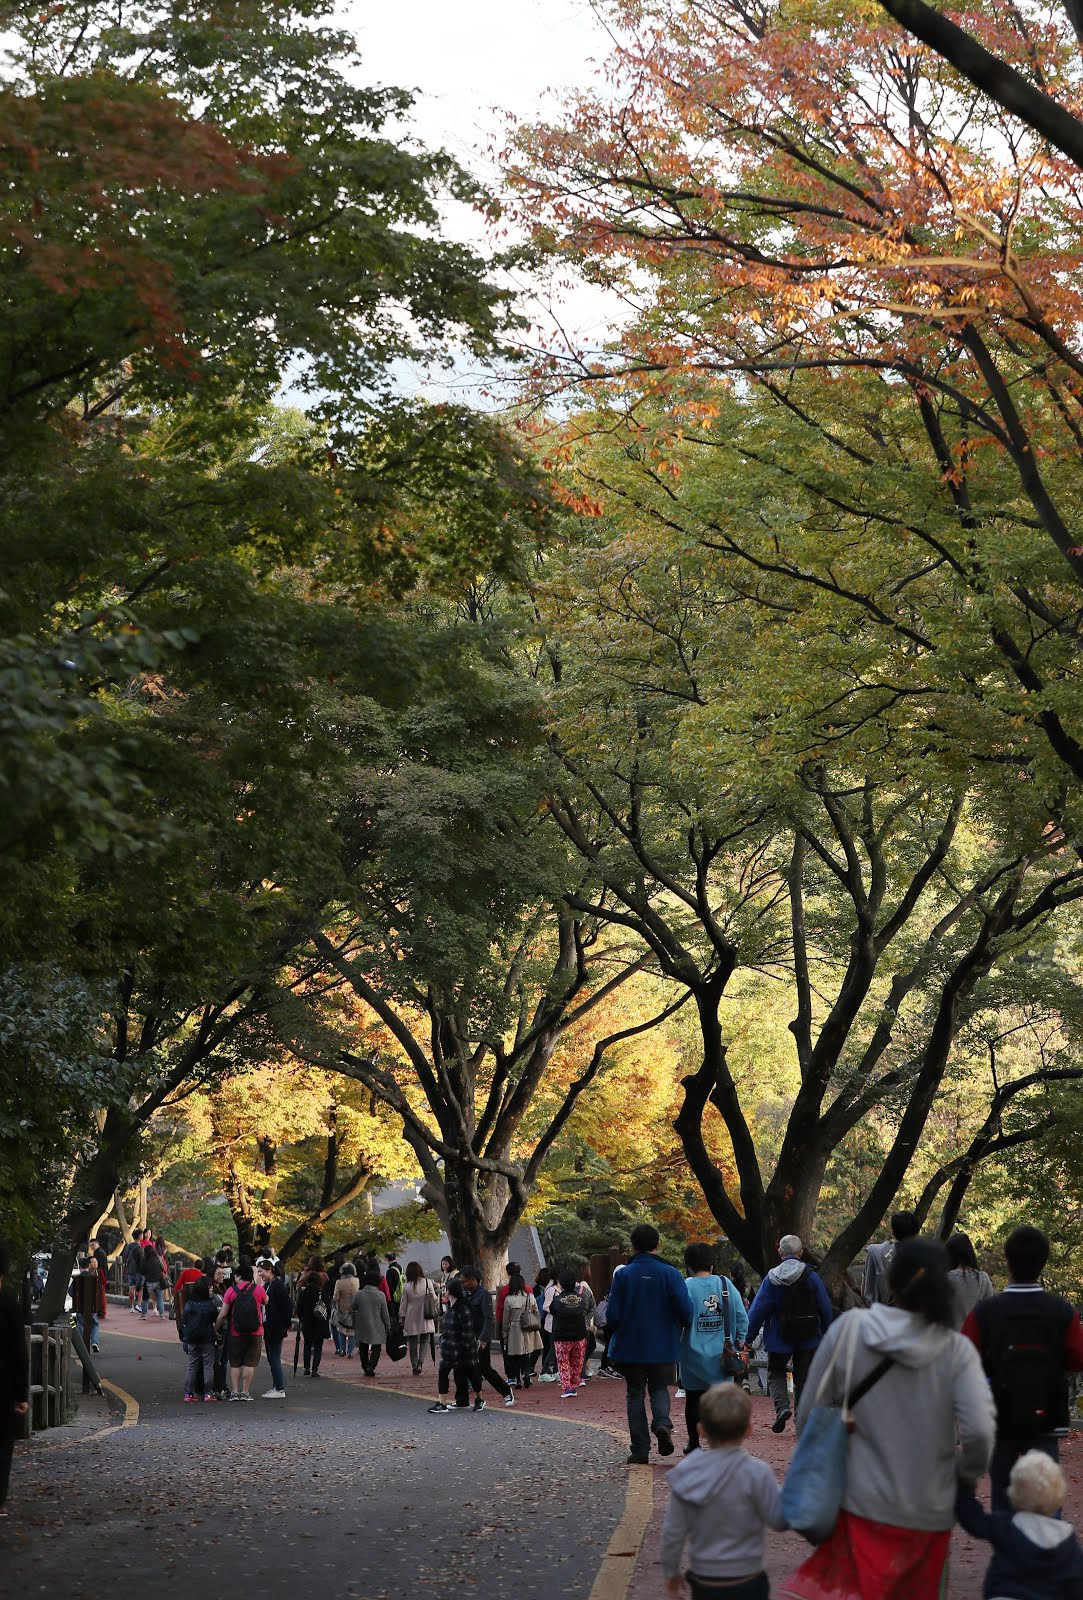 Early autumn hues started to paint the lush vegetation of trees in Namsan Park.